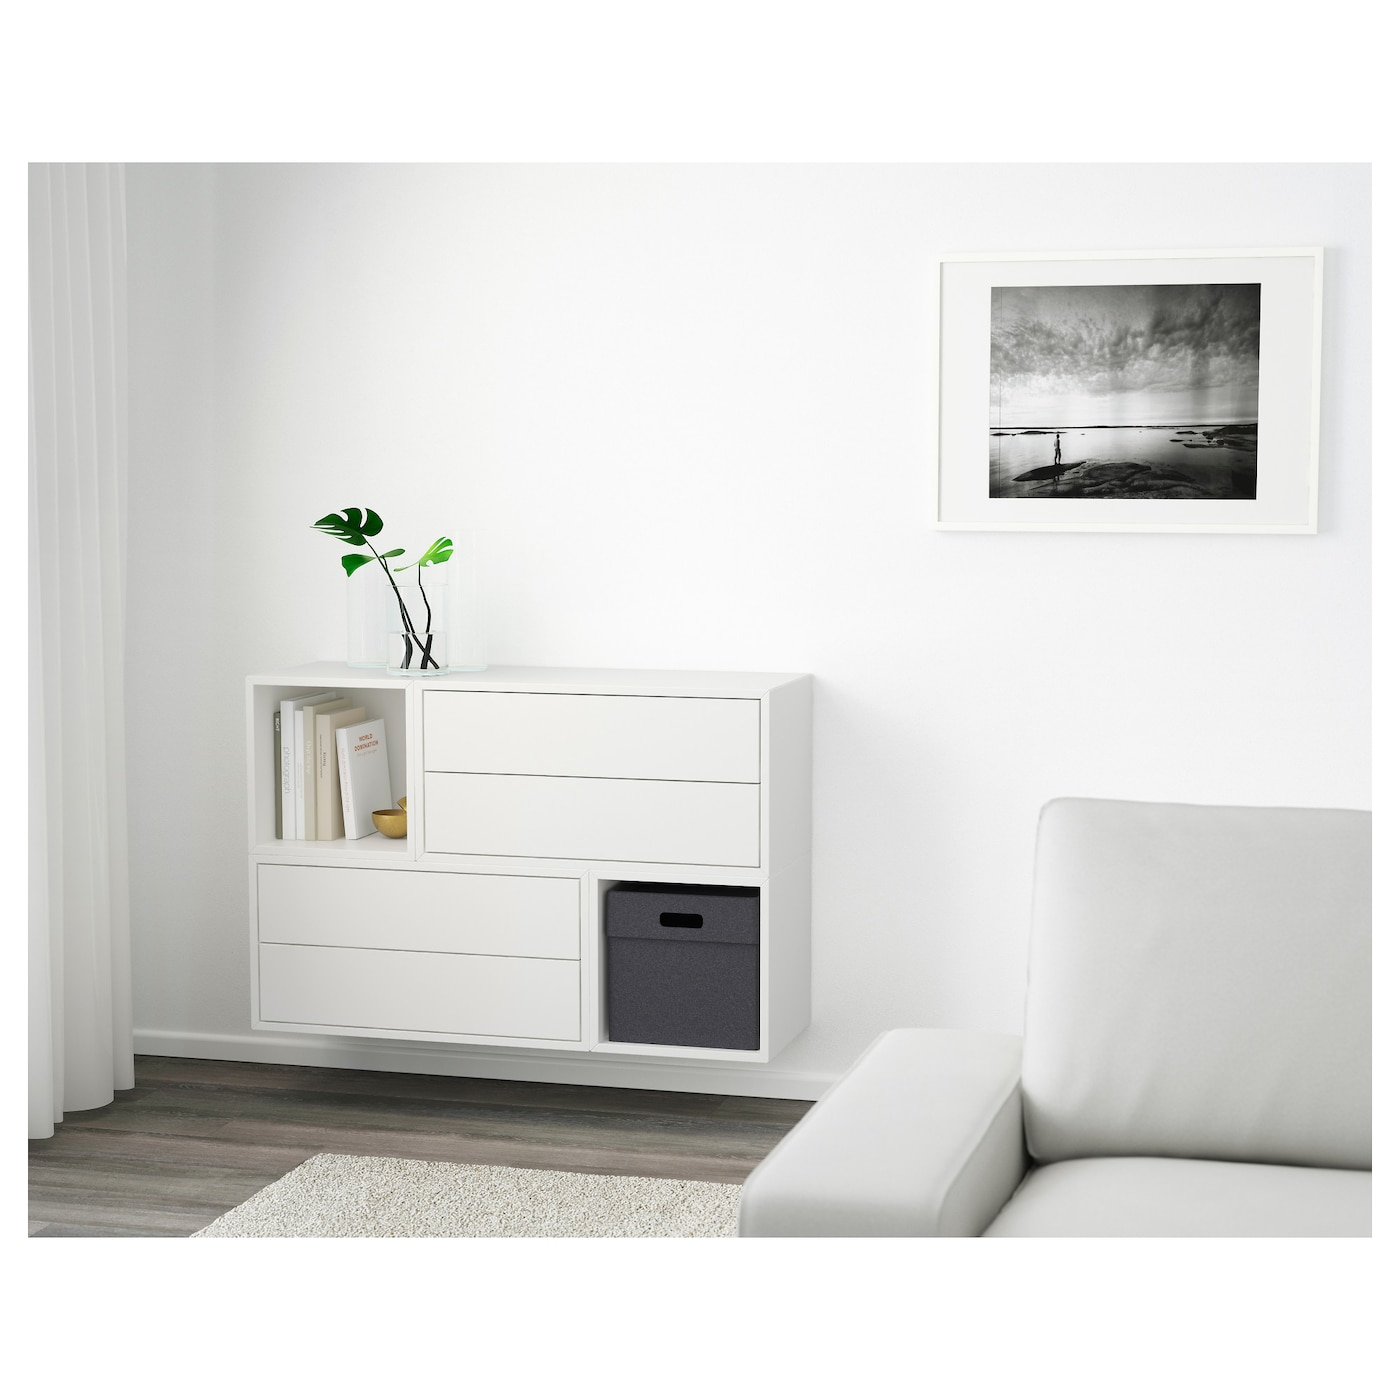 Ikea Kitchen Wall Storage: EKET Wall-mounted Cabinet Combination White 105 X 35 X 70